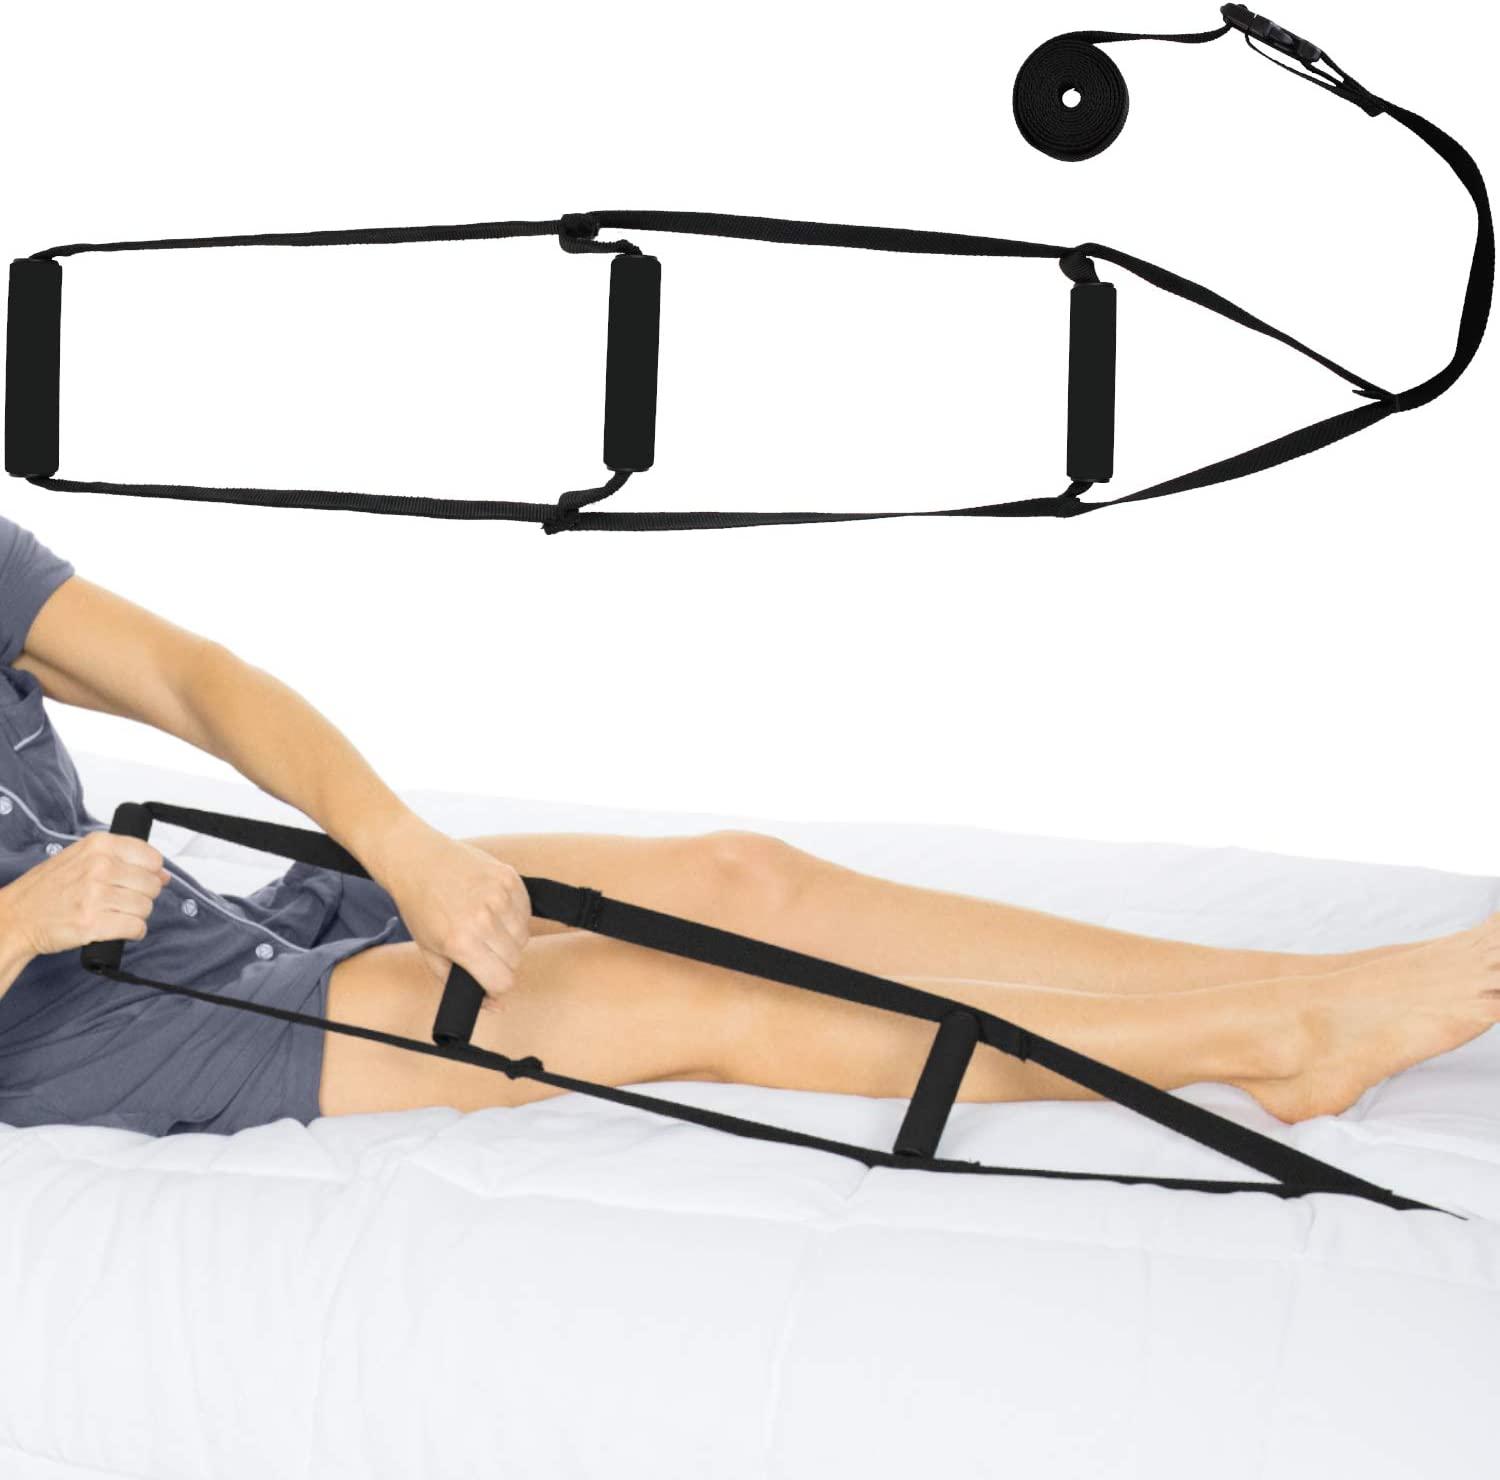 Vive Bed Ladder Ranking TOP5 Assist - Pull Up Lowest price challenge Handle Strap Device with